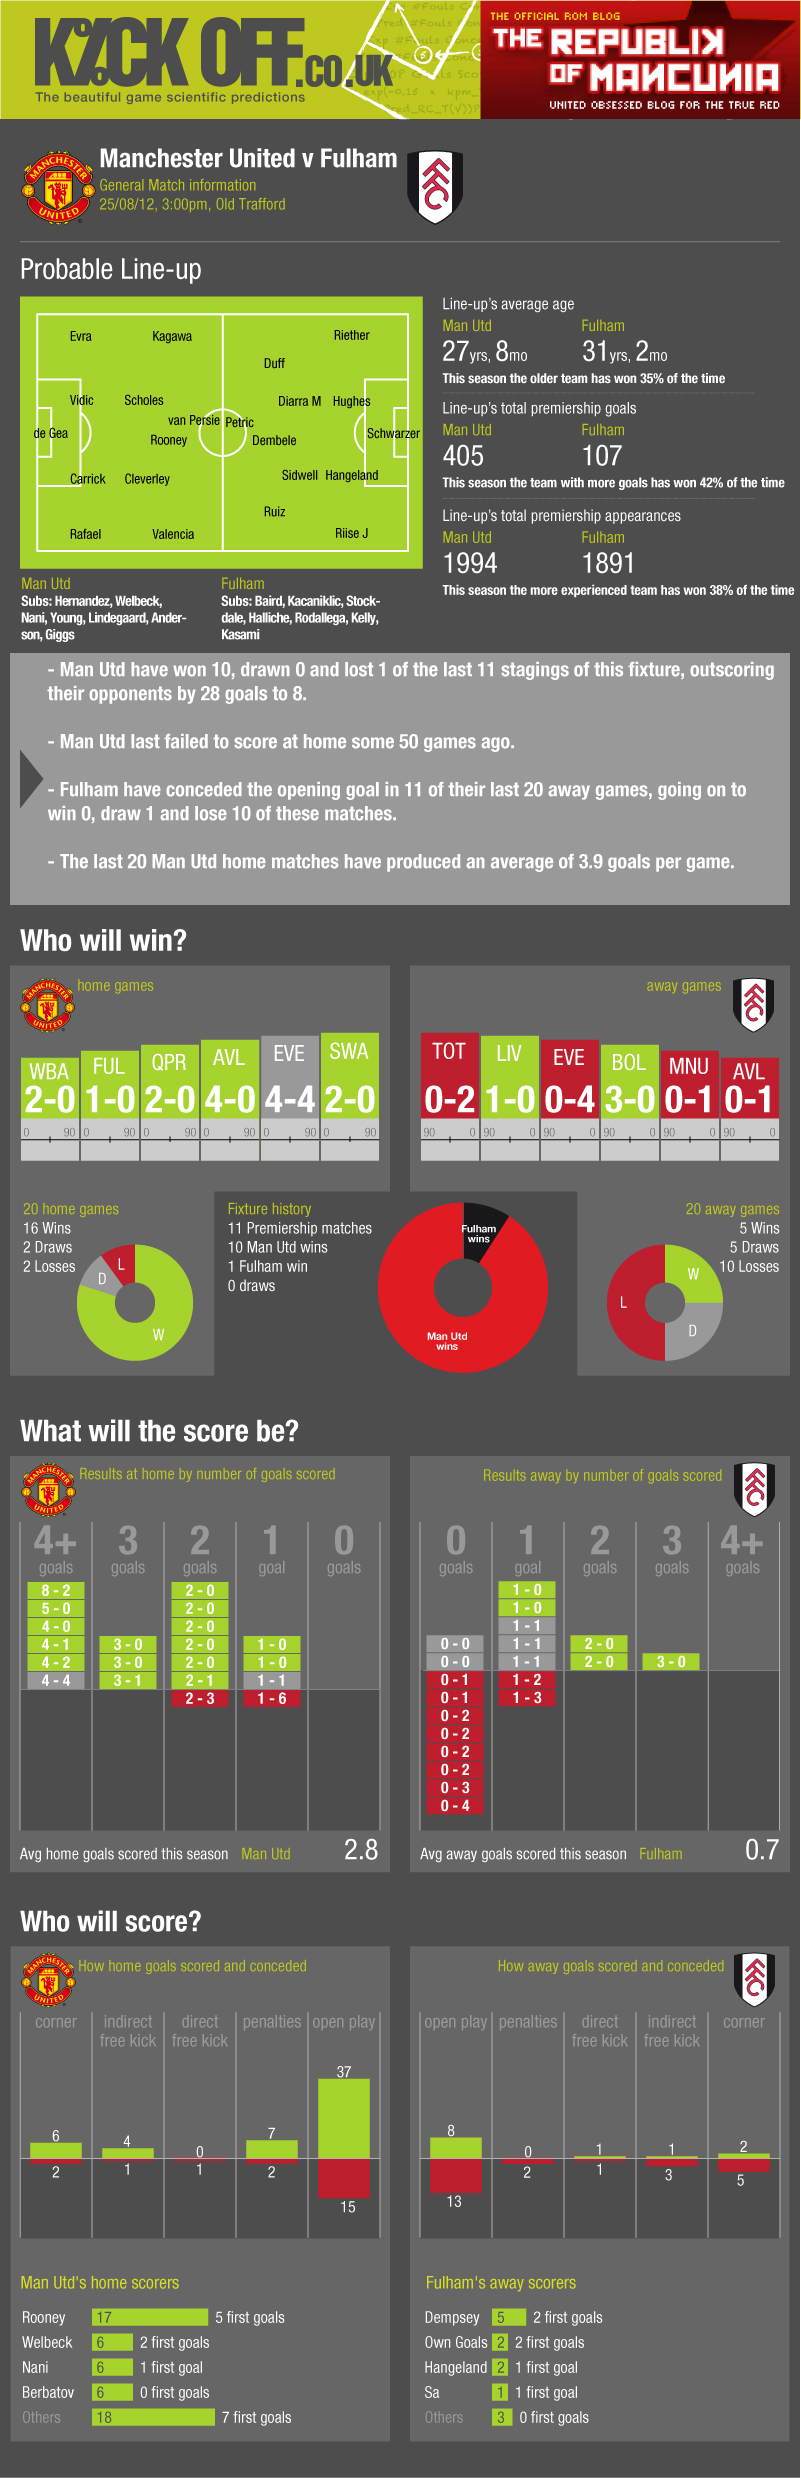 STATS: United vs Fulham